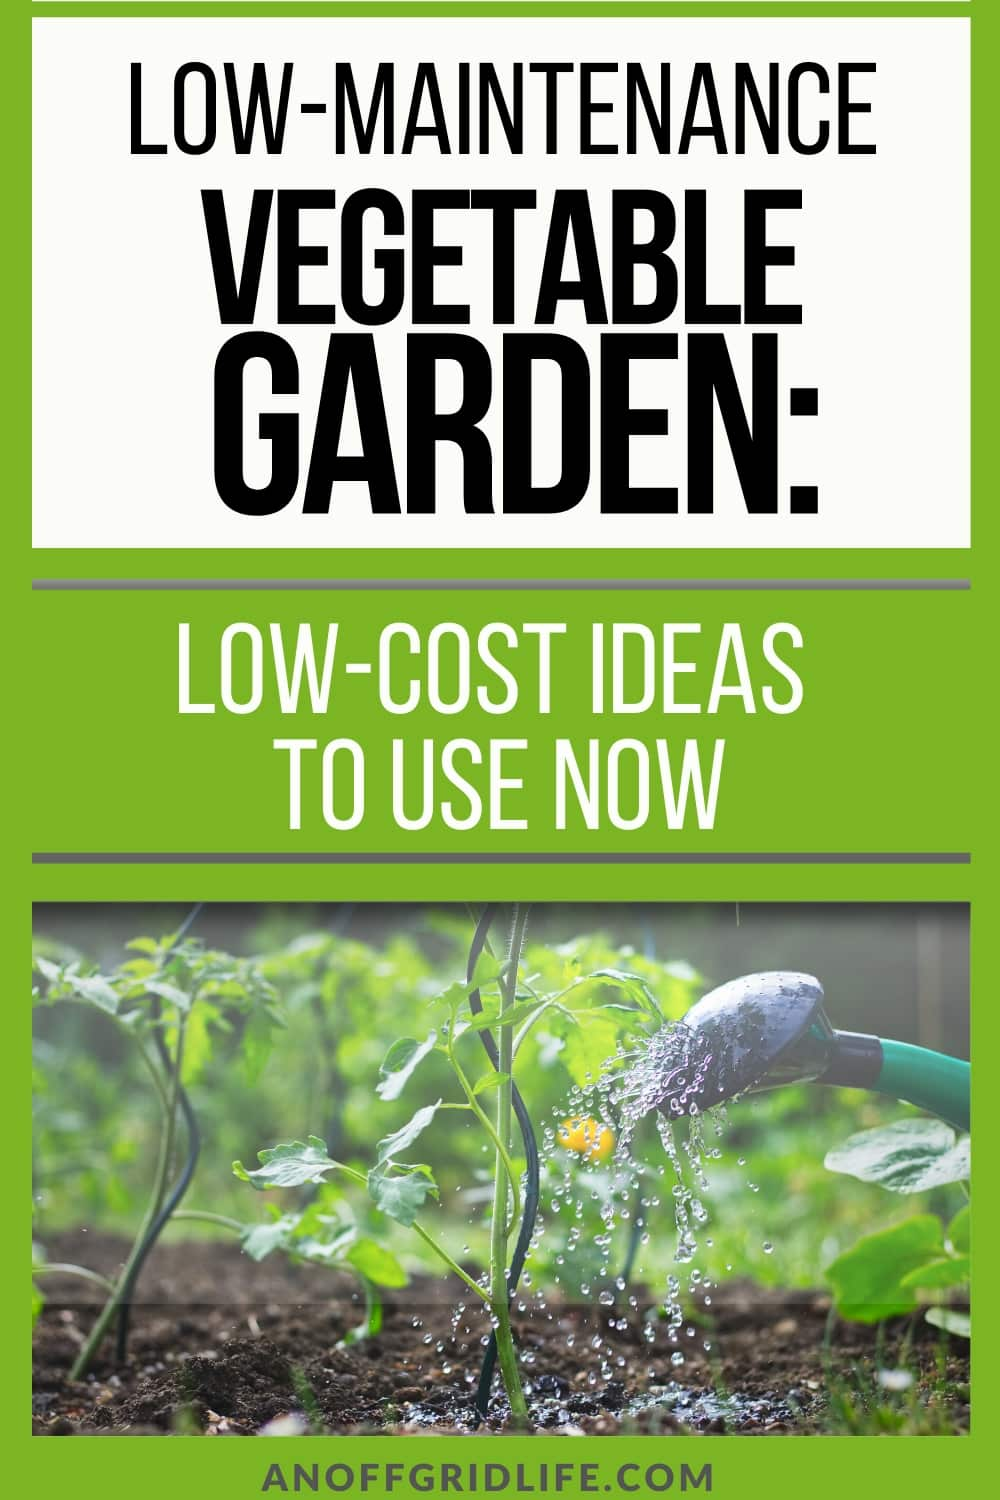 Low-Maintenance Vegetable Garden: Low-Cost Ideas To Use Now |